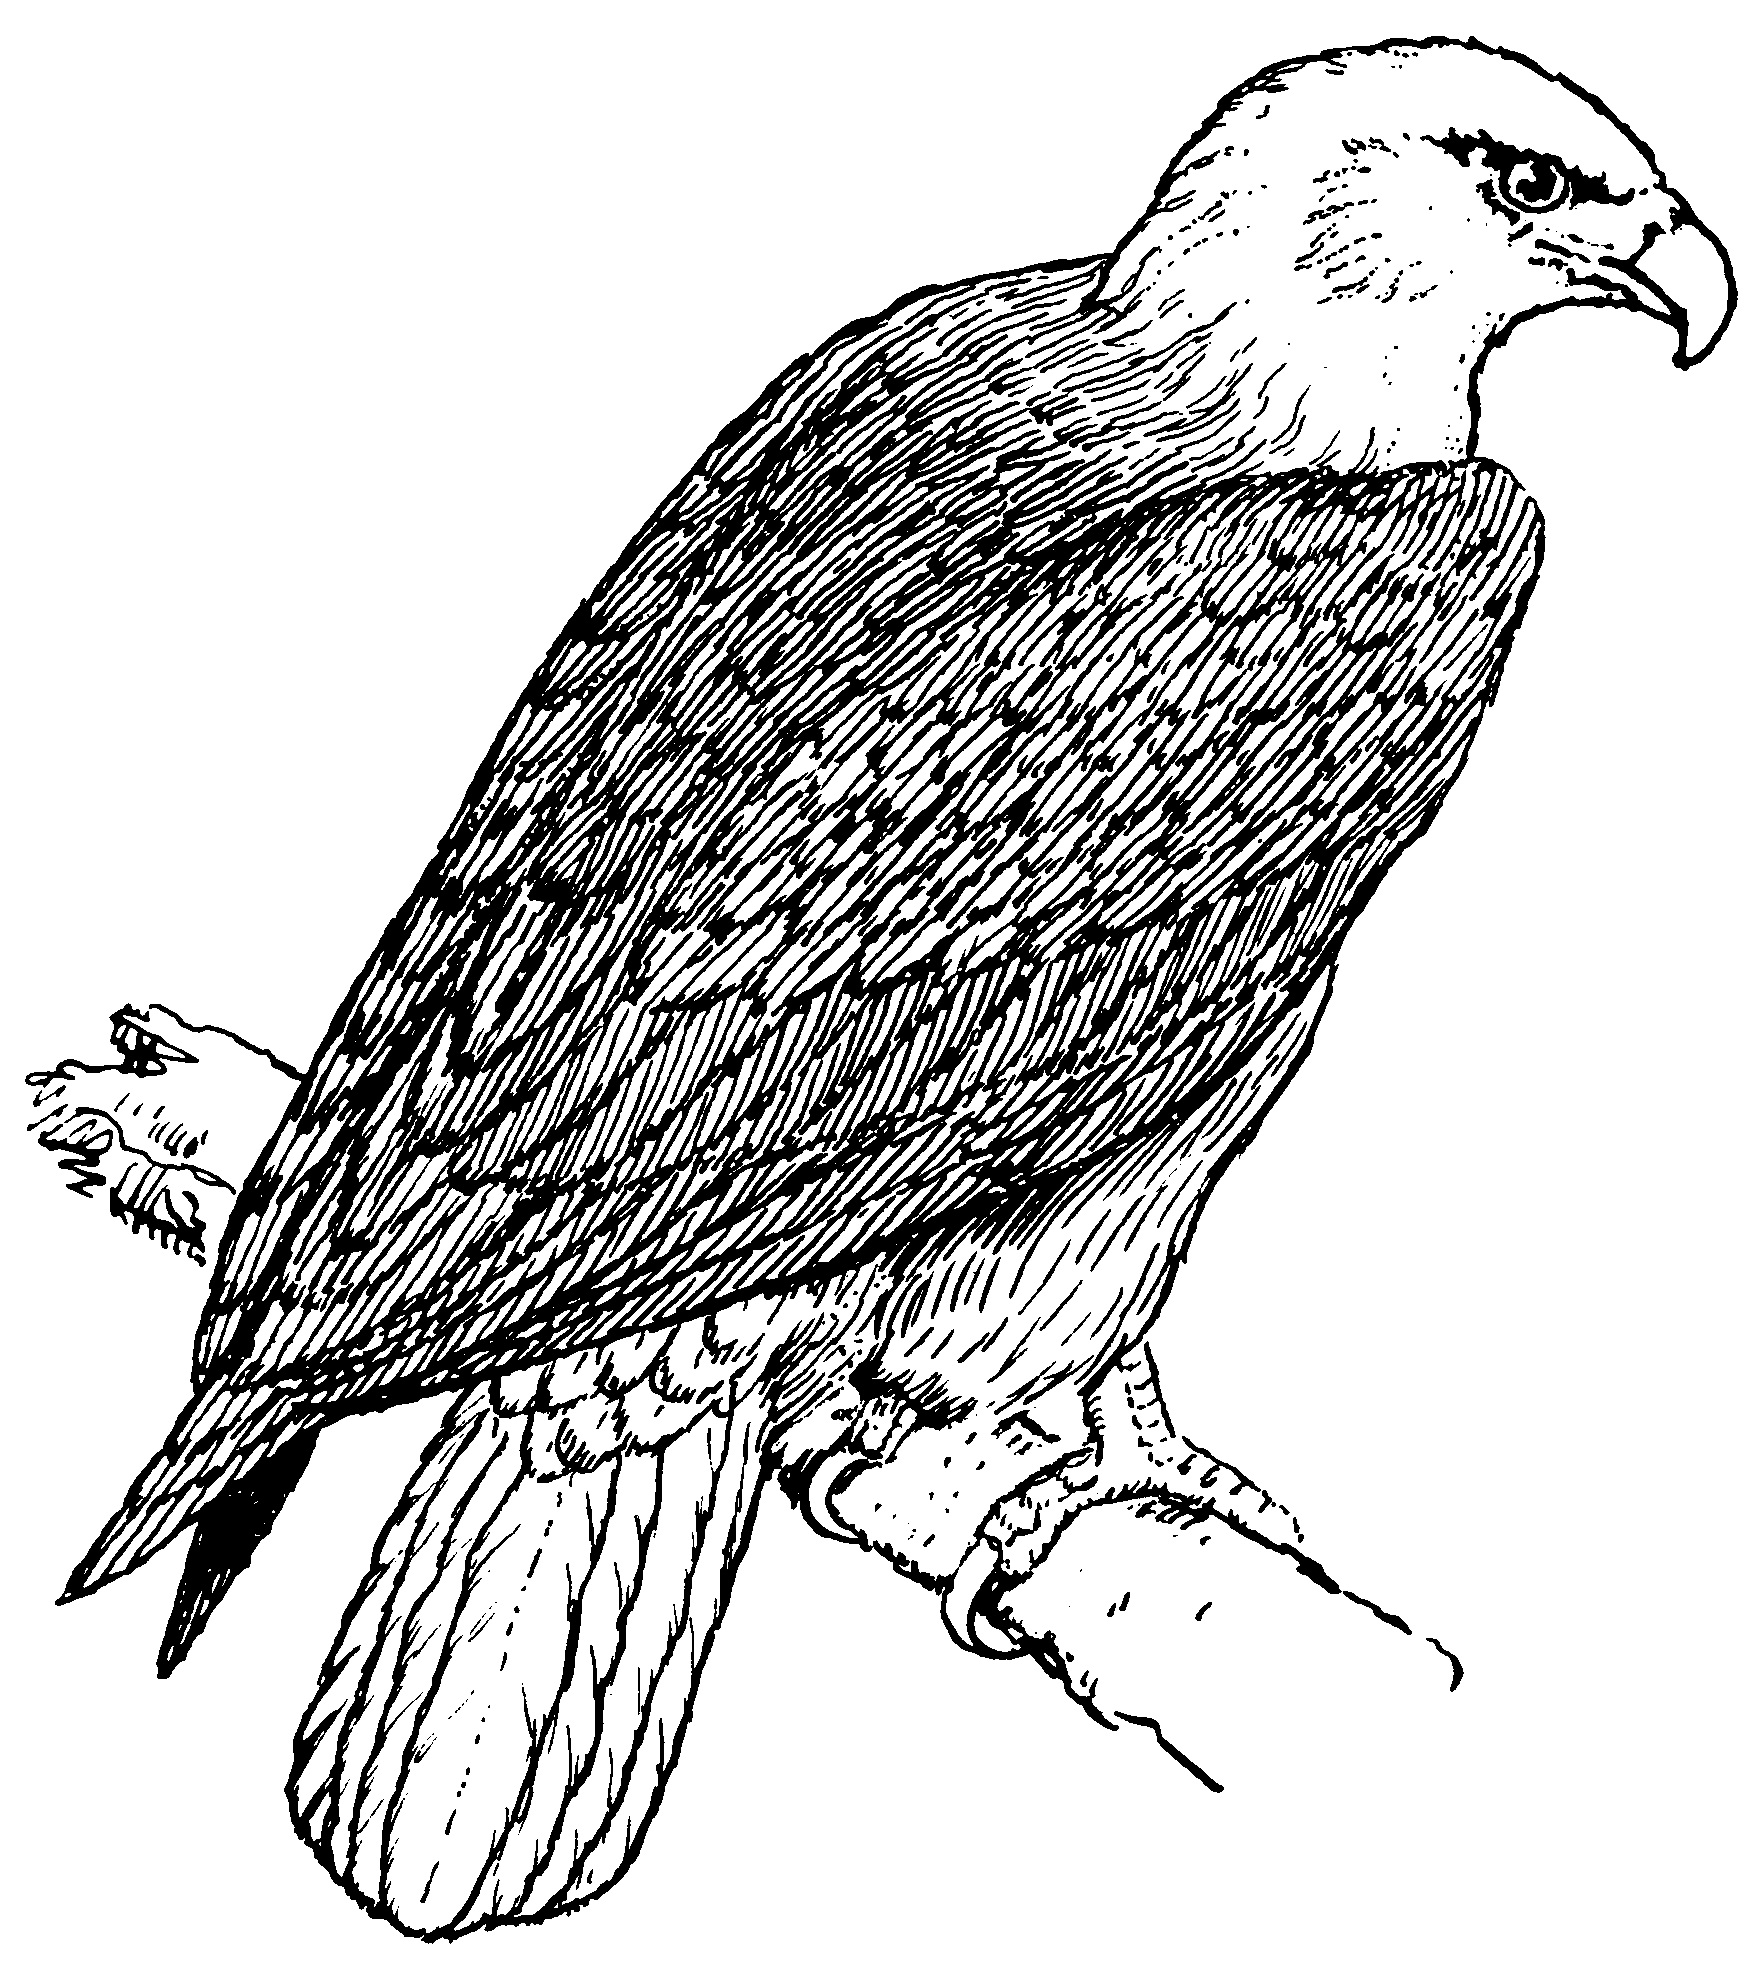 bald eagle coloring pages to print - American Bald Eagle Coloring Page